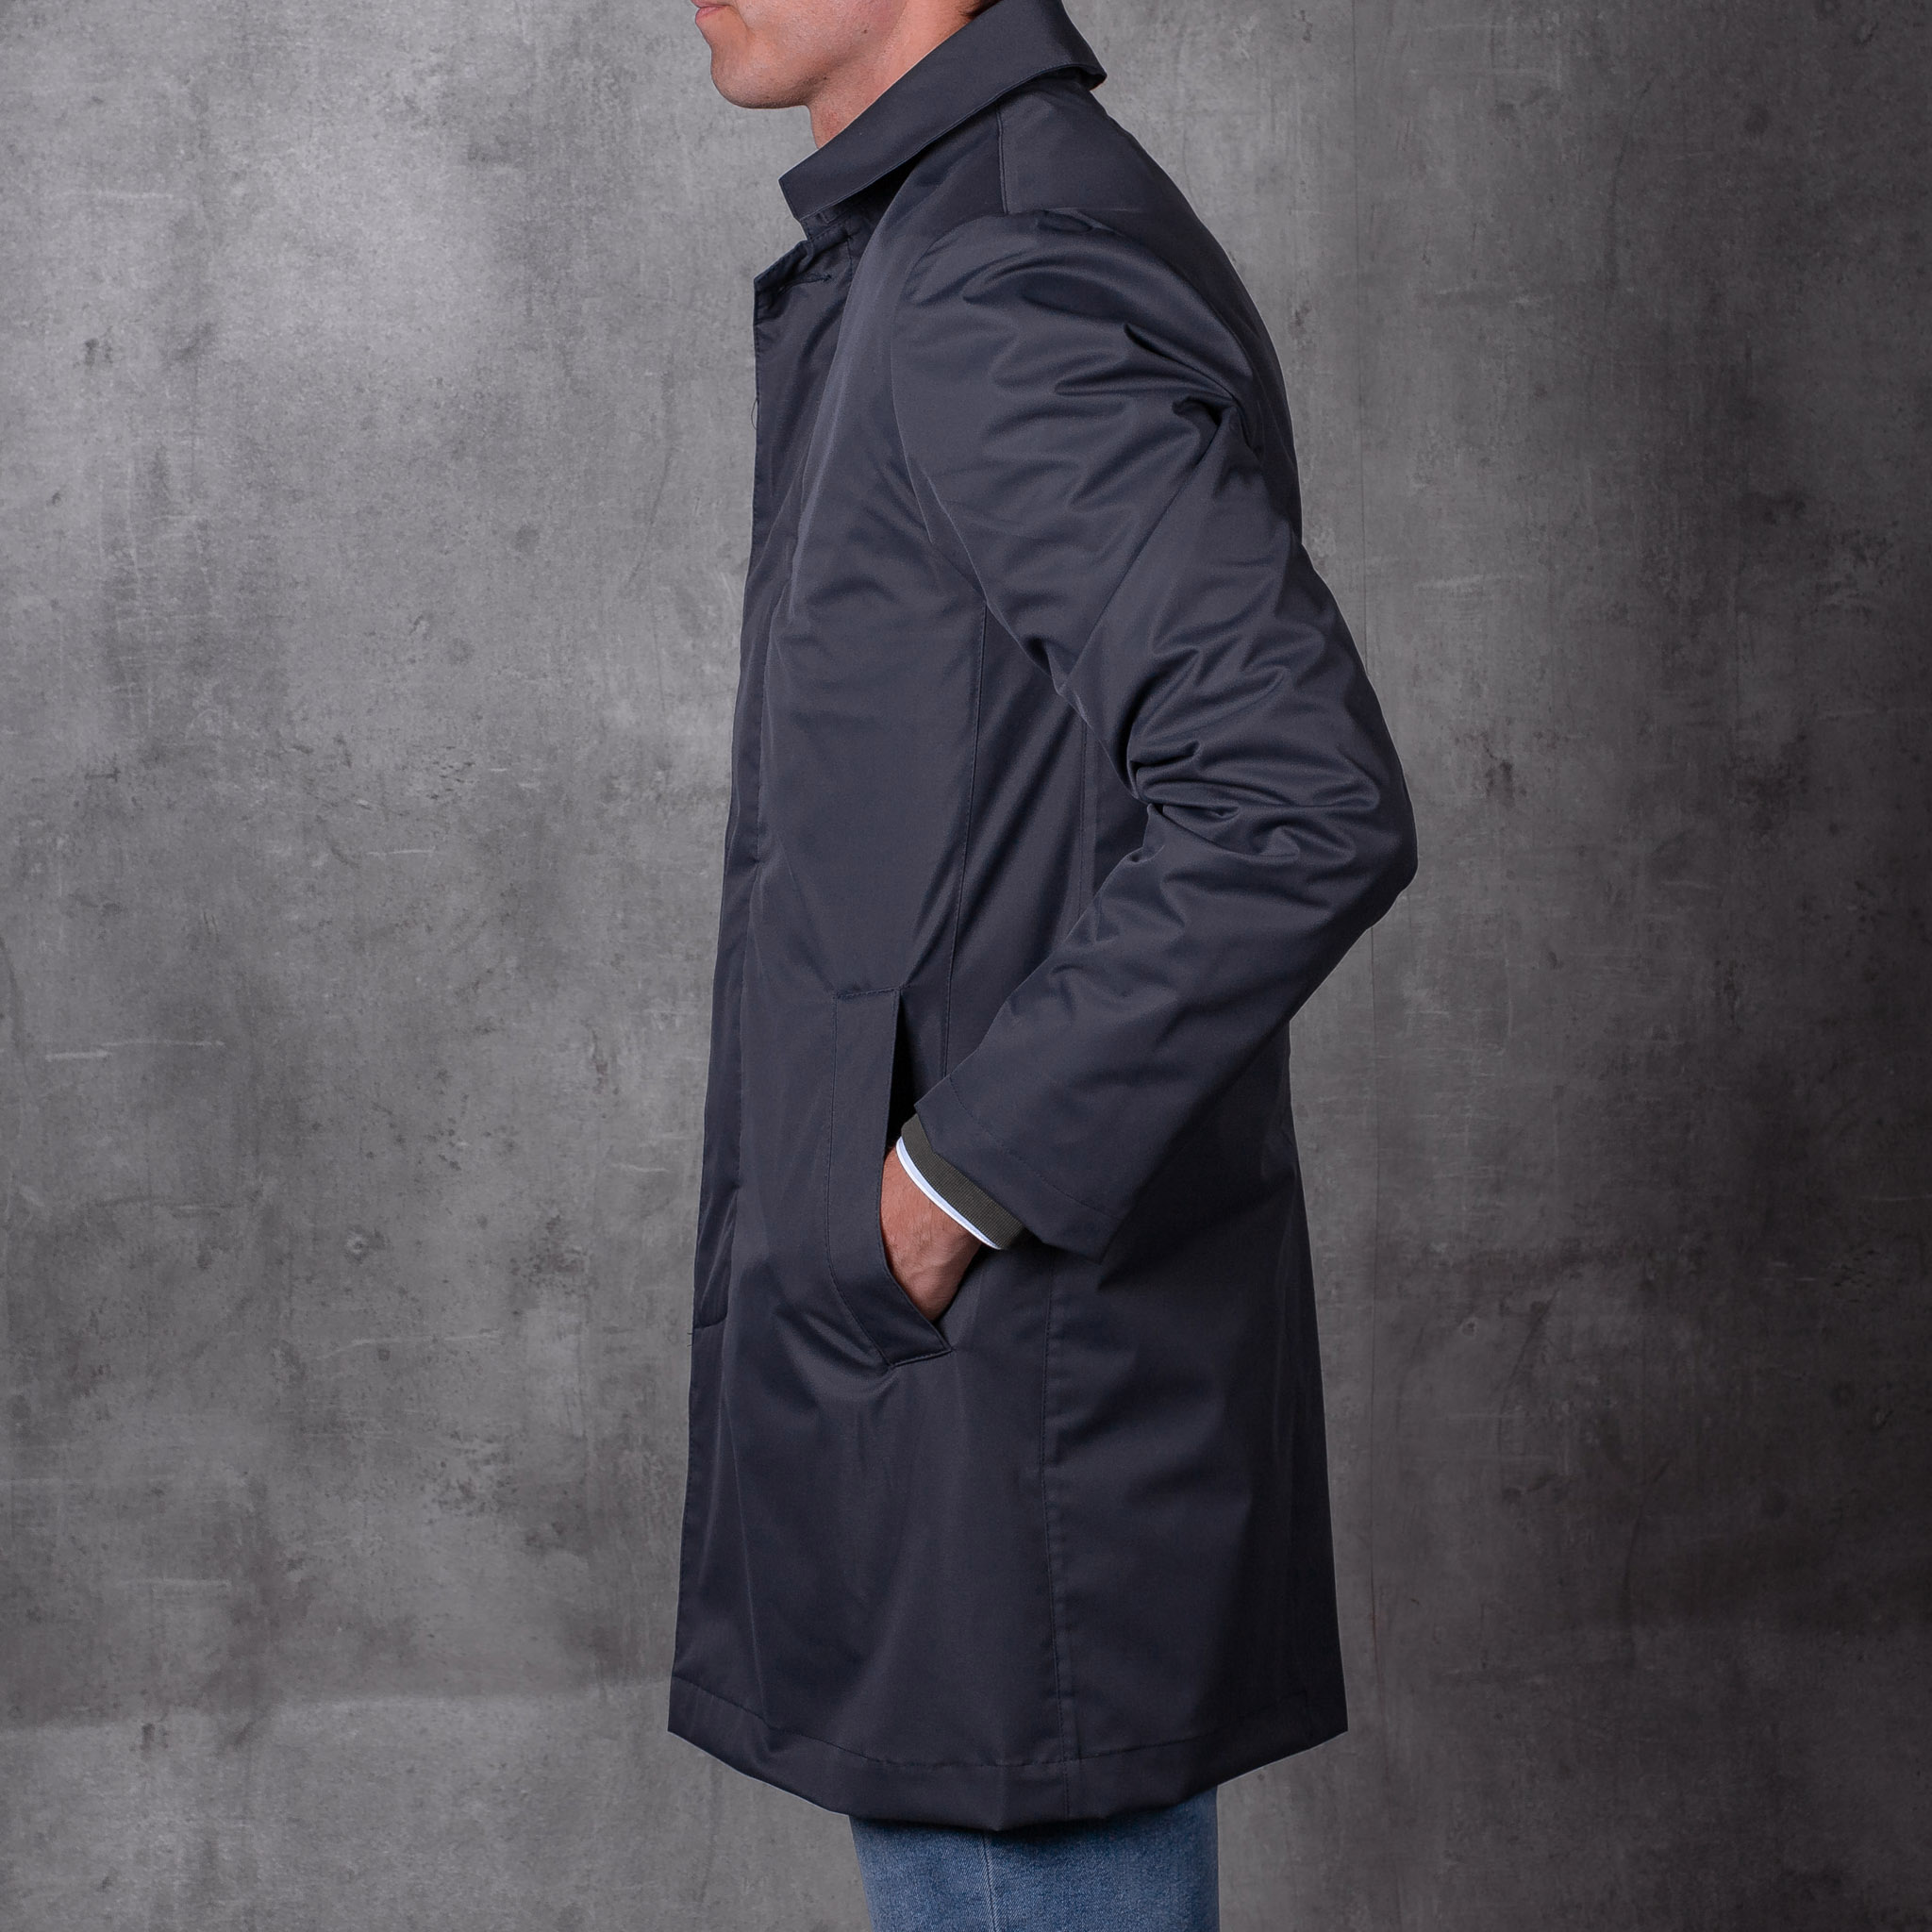 RAINCOAT-GABARDINA-01-02-The-Seelk-2